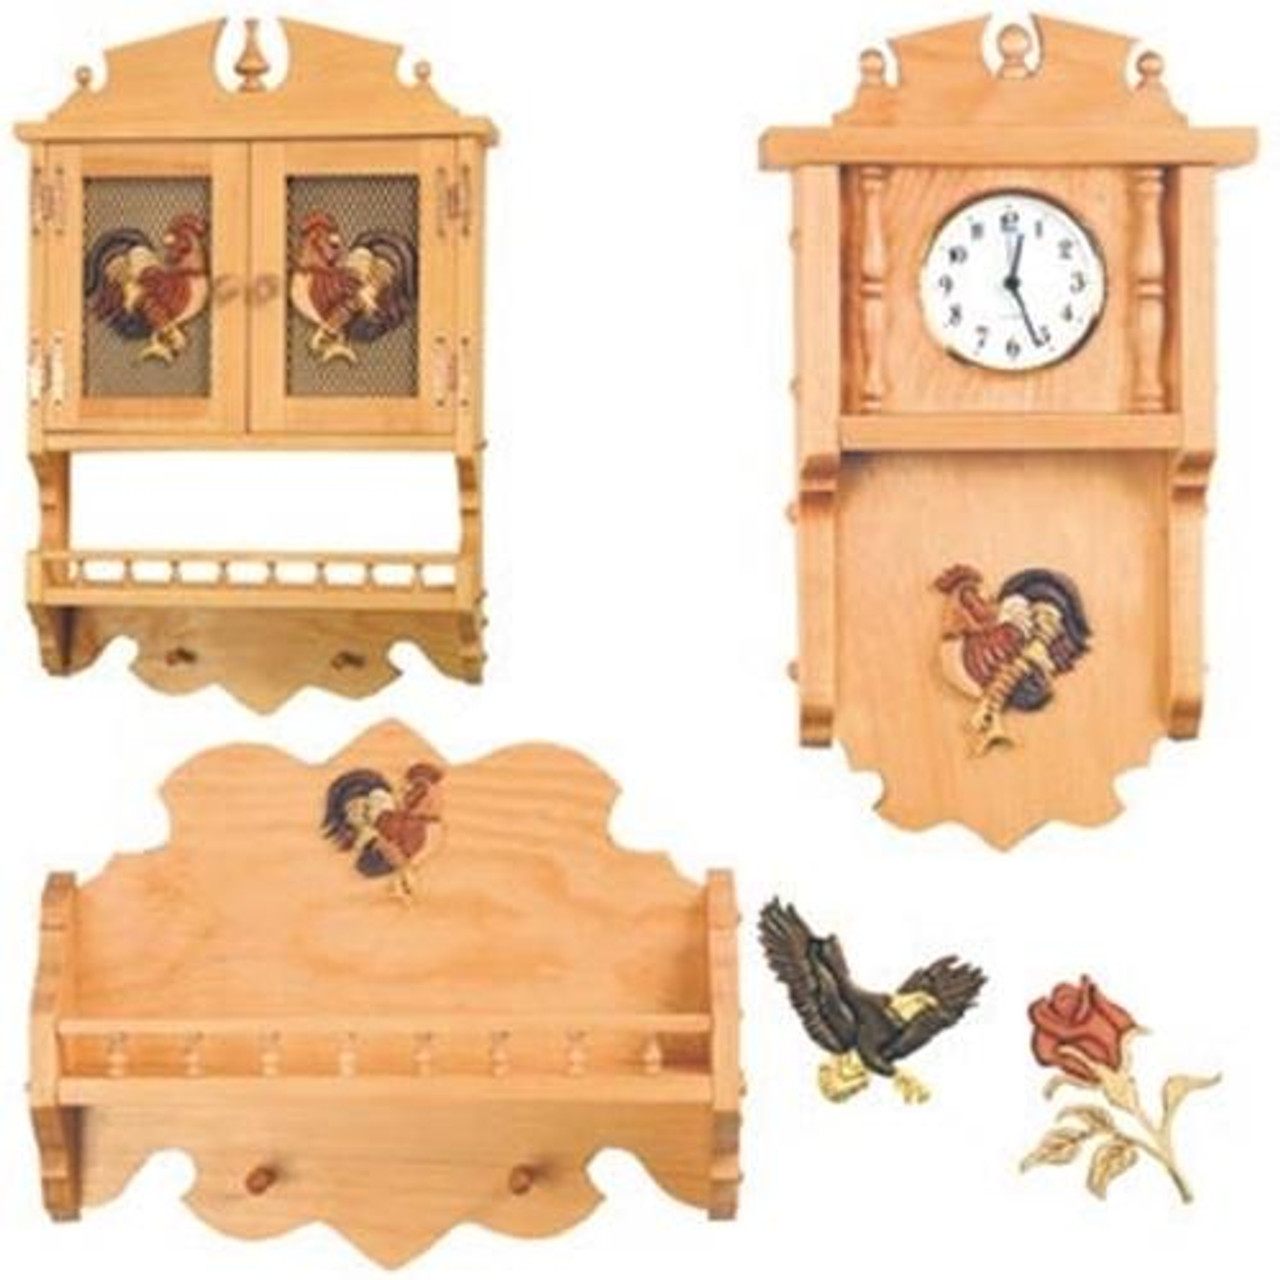 Cherry Tree Toys Special All three Intarsia Furniture Plans